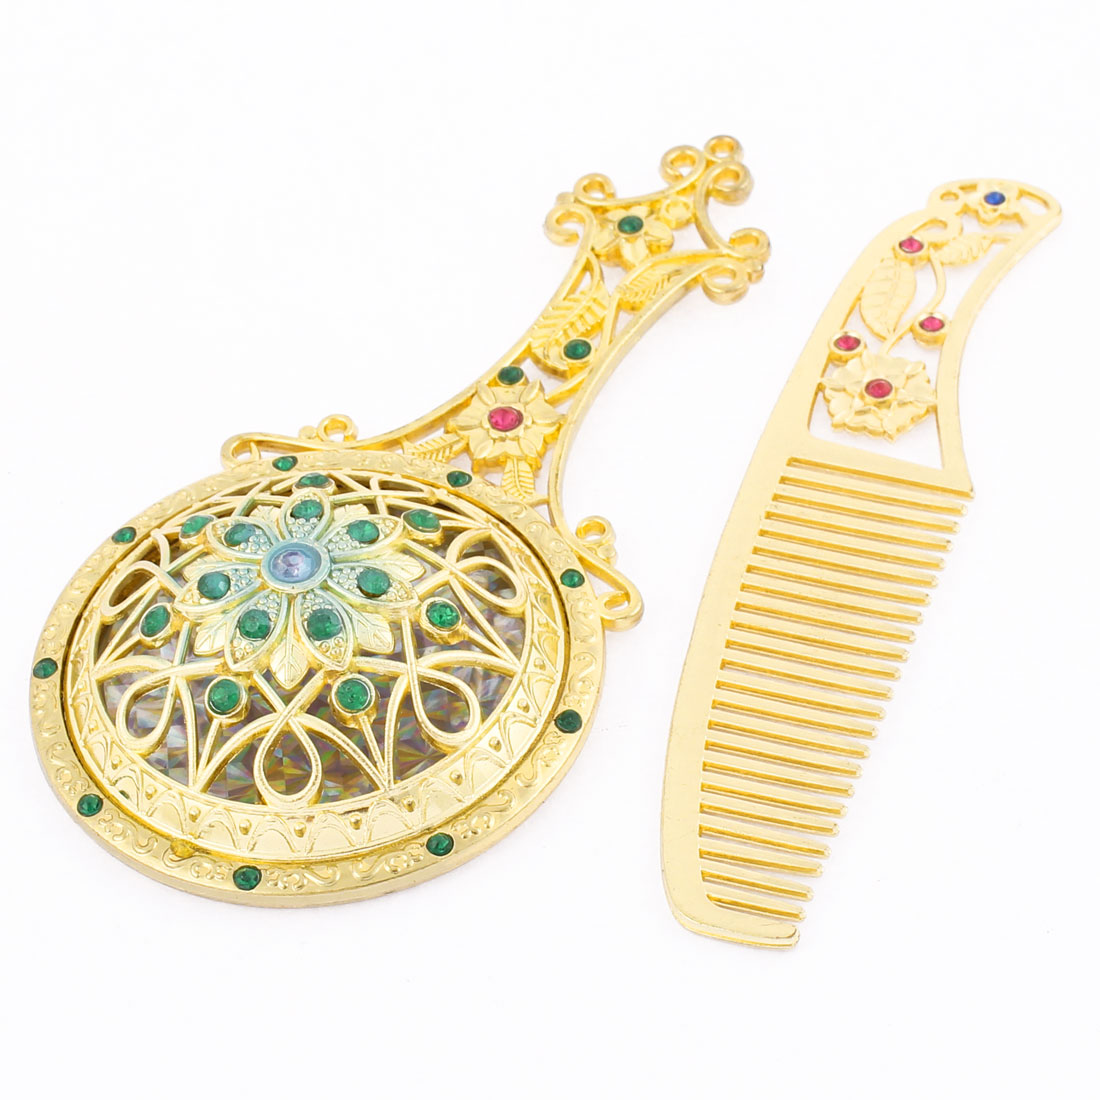 Flower Shaped Faux Rhinestone Decor Handheld Makeup Mirror Comb Set Gold Tone